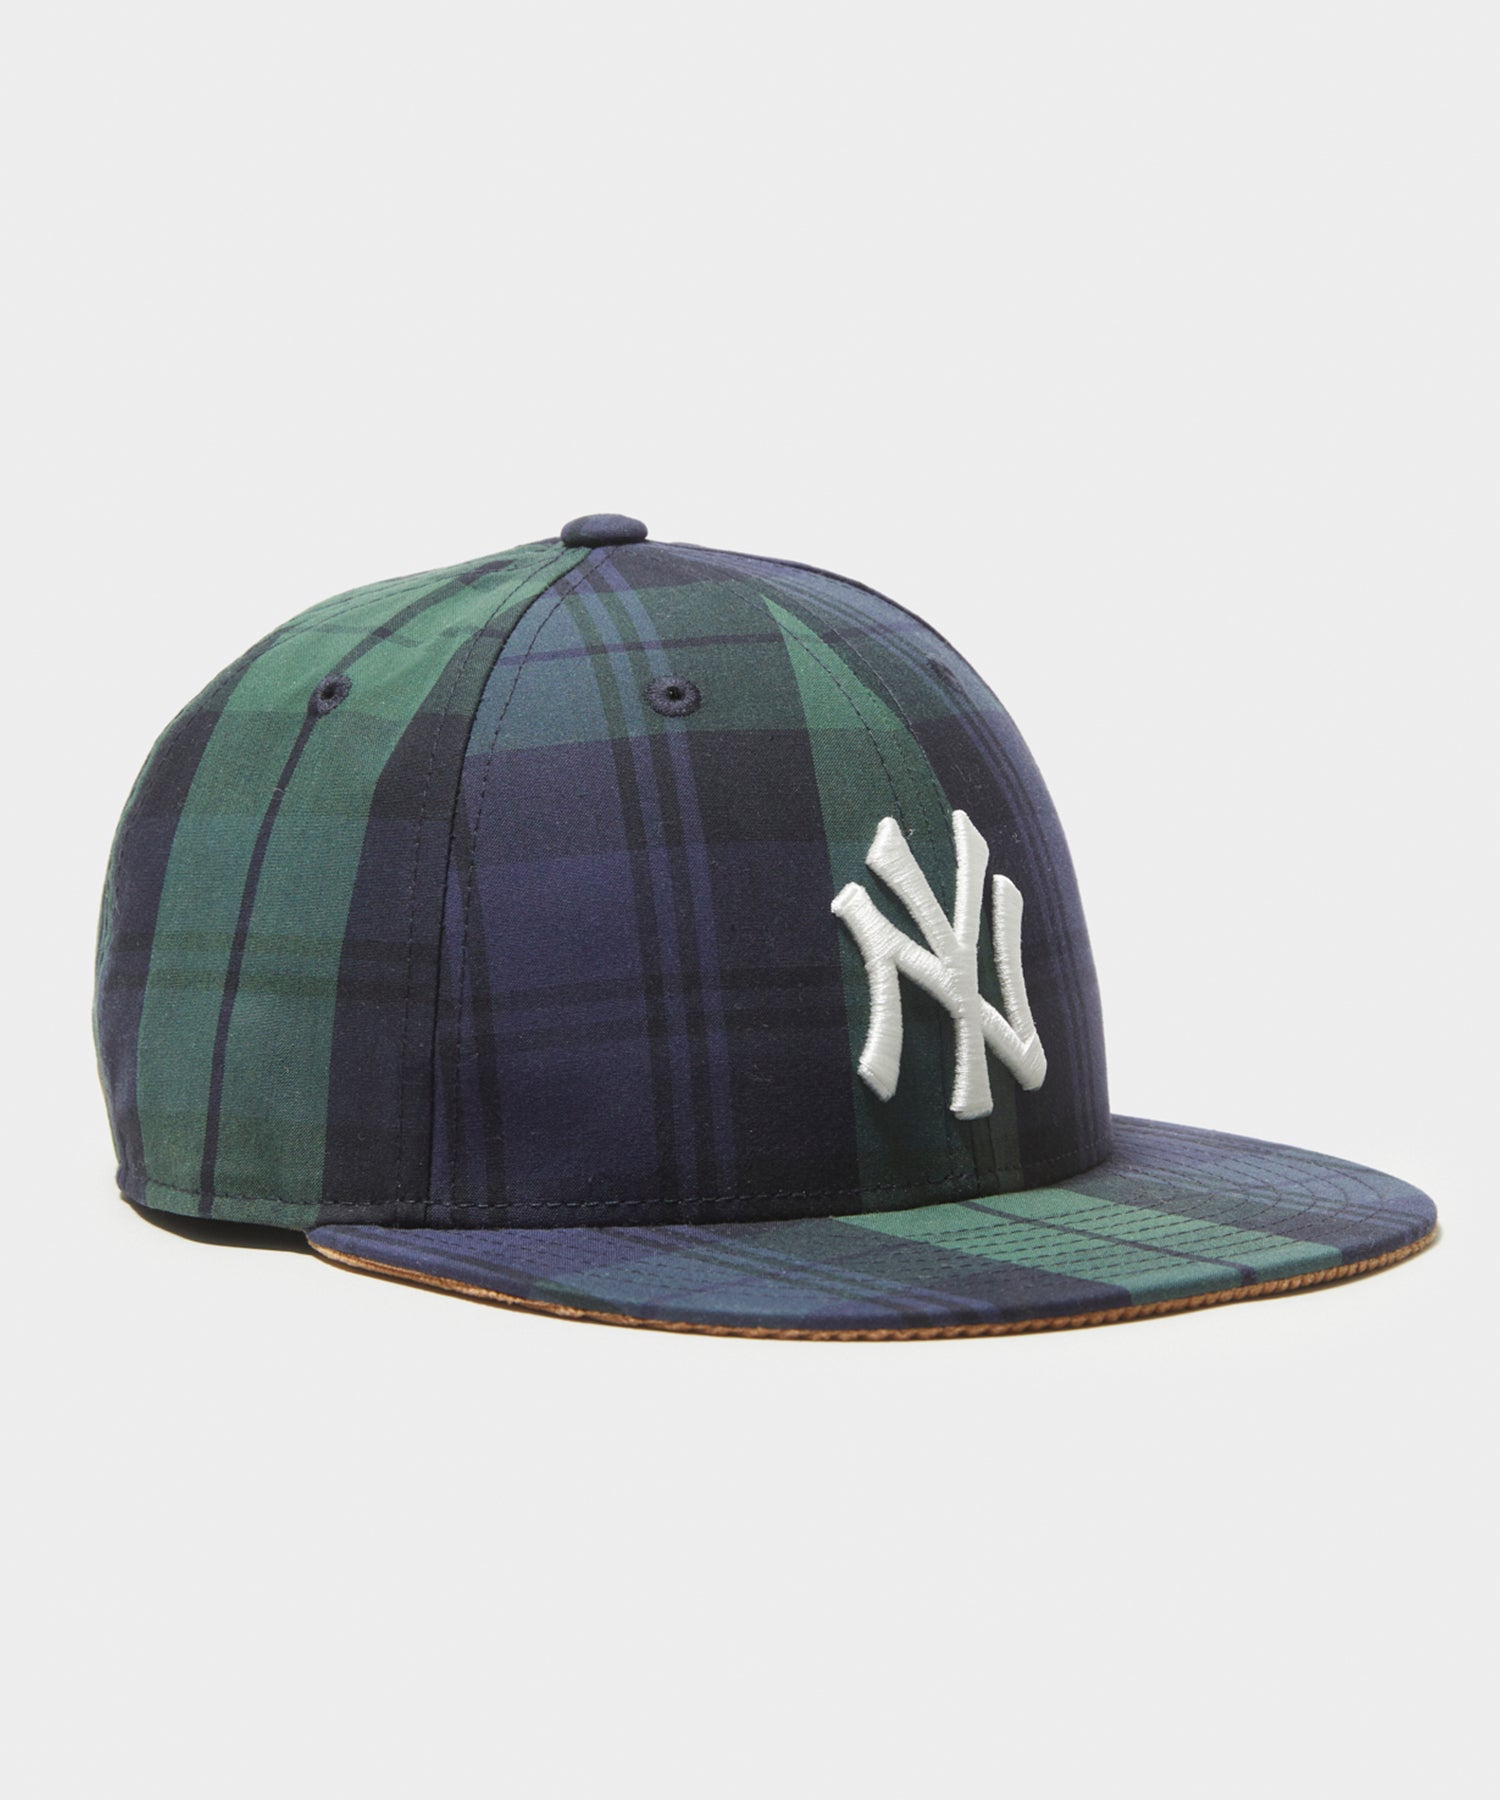 Todd Snyder + New Era 59Fifty Adjustable British Millerain Cap in Blackwatch Plaid